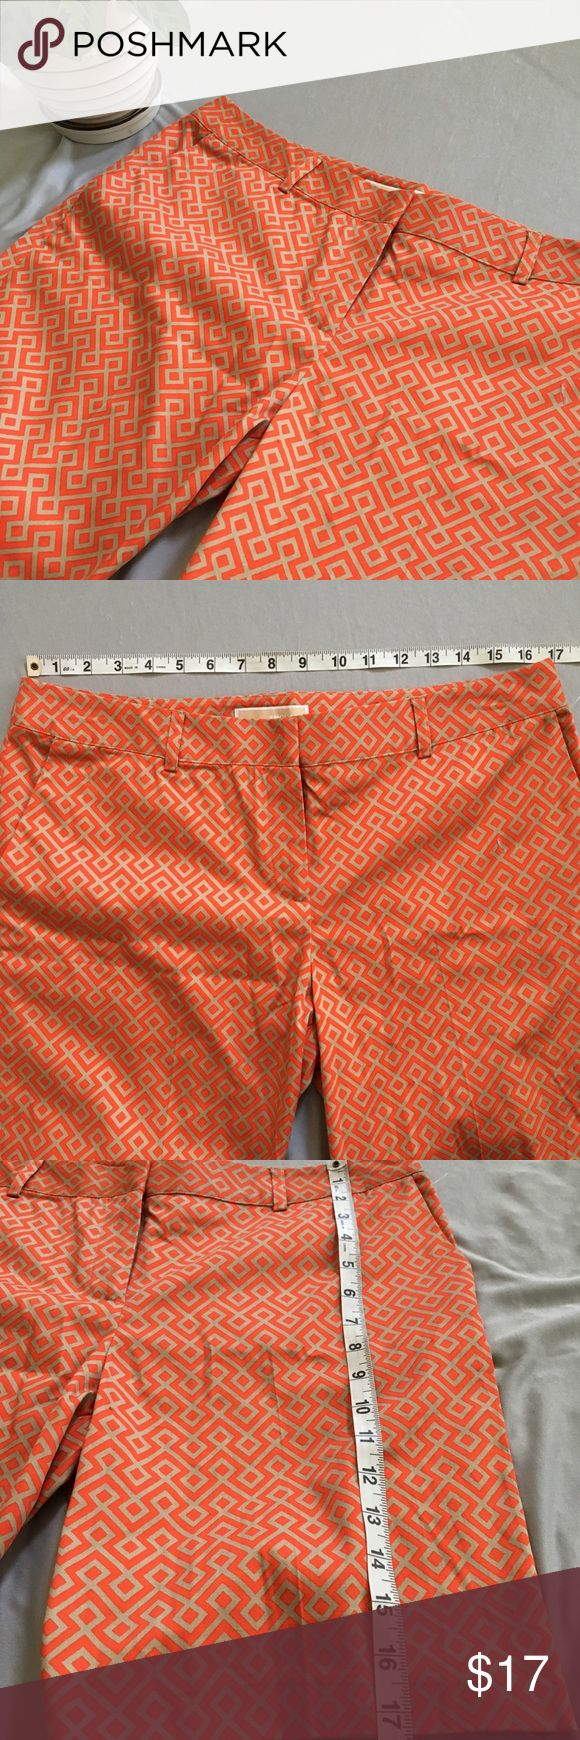 Michael Kors Patterned Shorts -Orange and tan patterned shorts.  -NWOT -The is one small imperfection located on the leg of the shorts (Close up Picture of Pattern shows the imperfection) Michael Kors Shorts